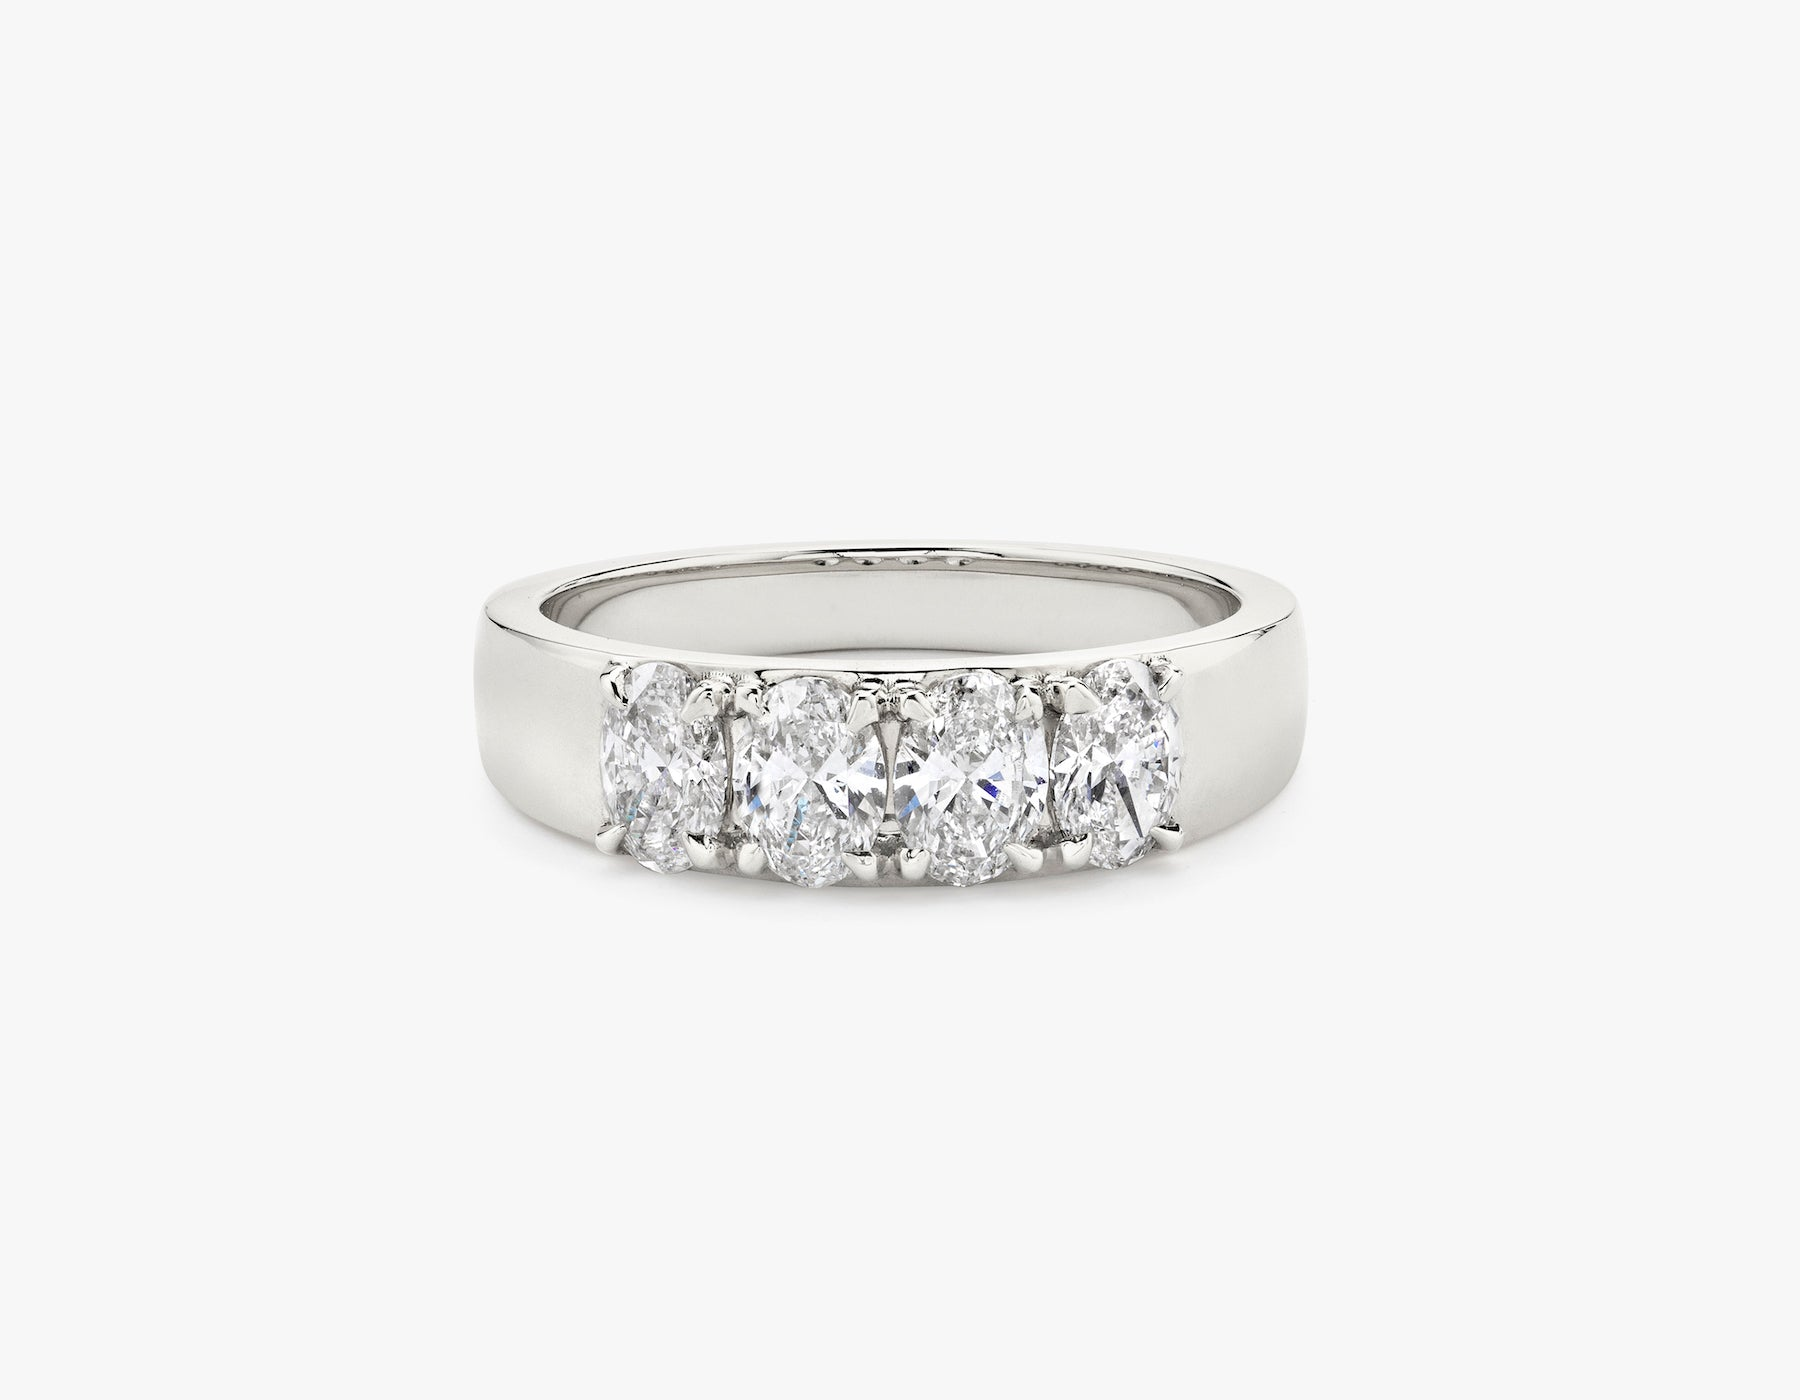 Vrai simple minimalist Oval Diamond Tetrad Band .25ct Oval Diamond Ring, 14K White Gold